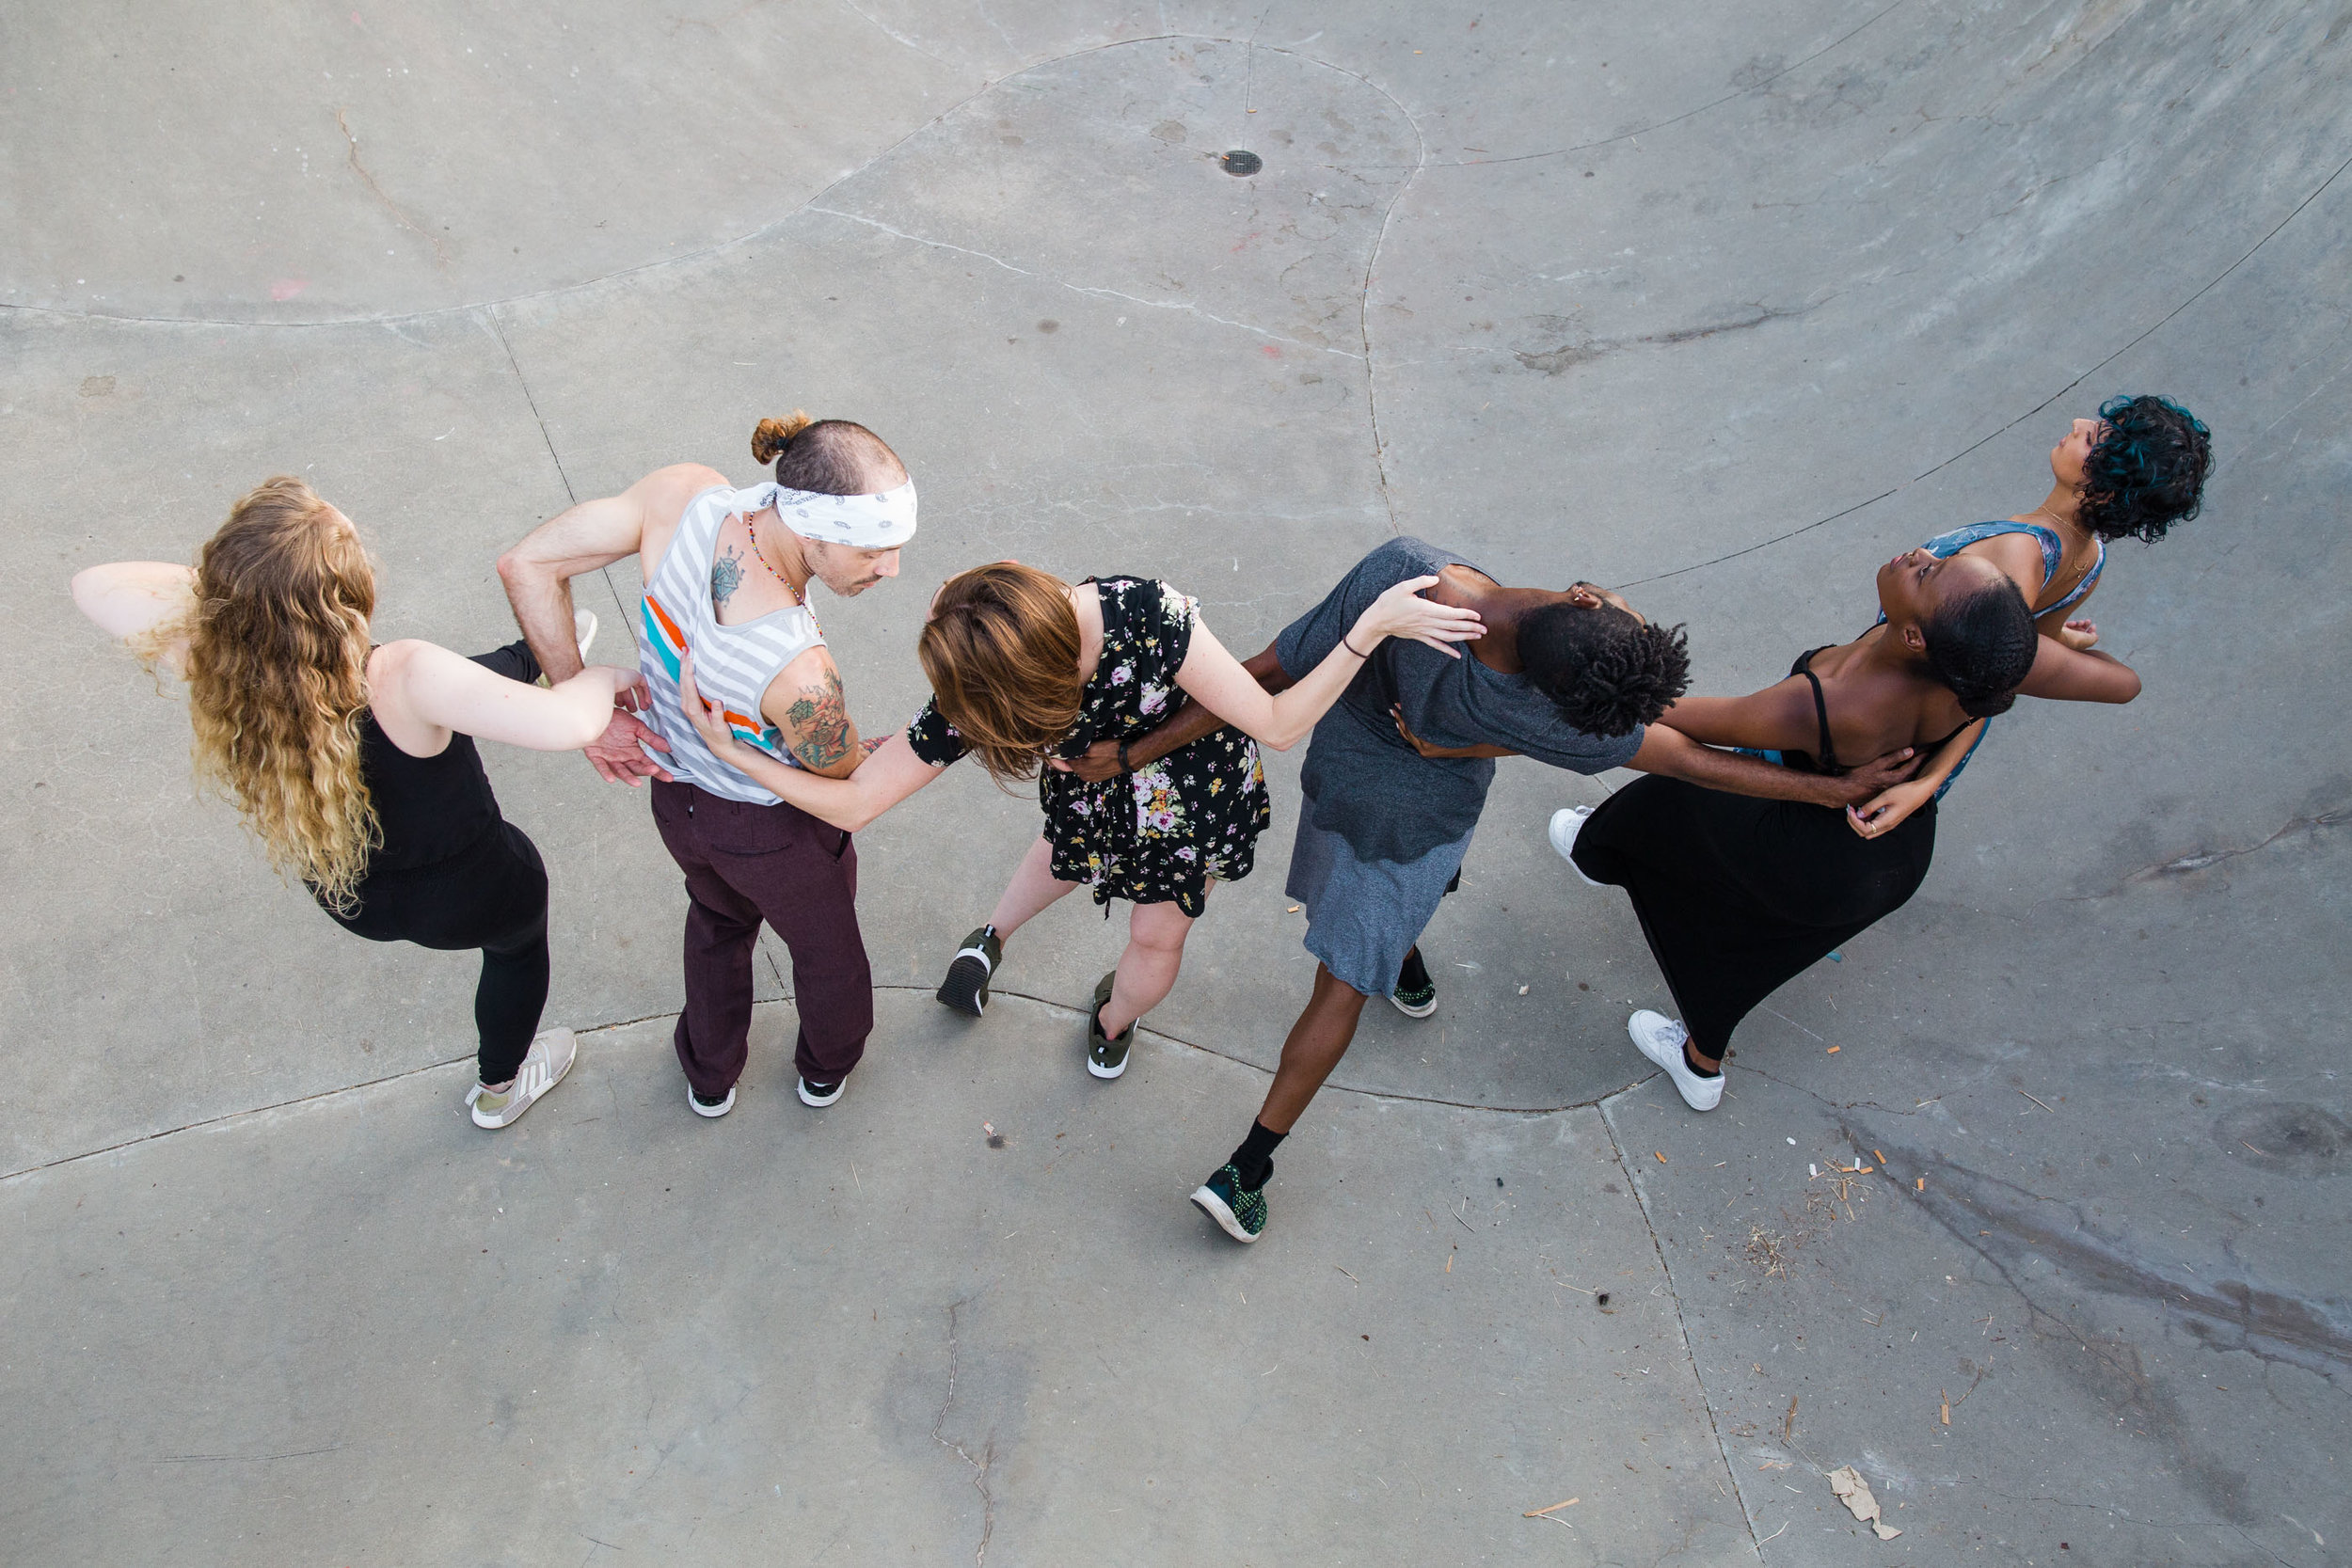 2018_08_25_shals_skate_park_durham_dances_web-selects-8610.jpg